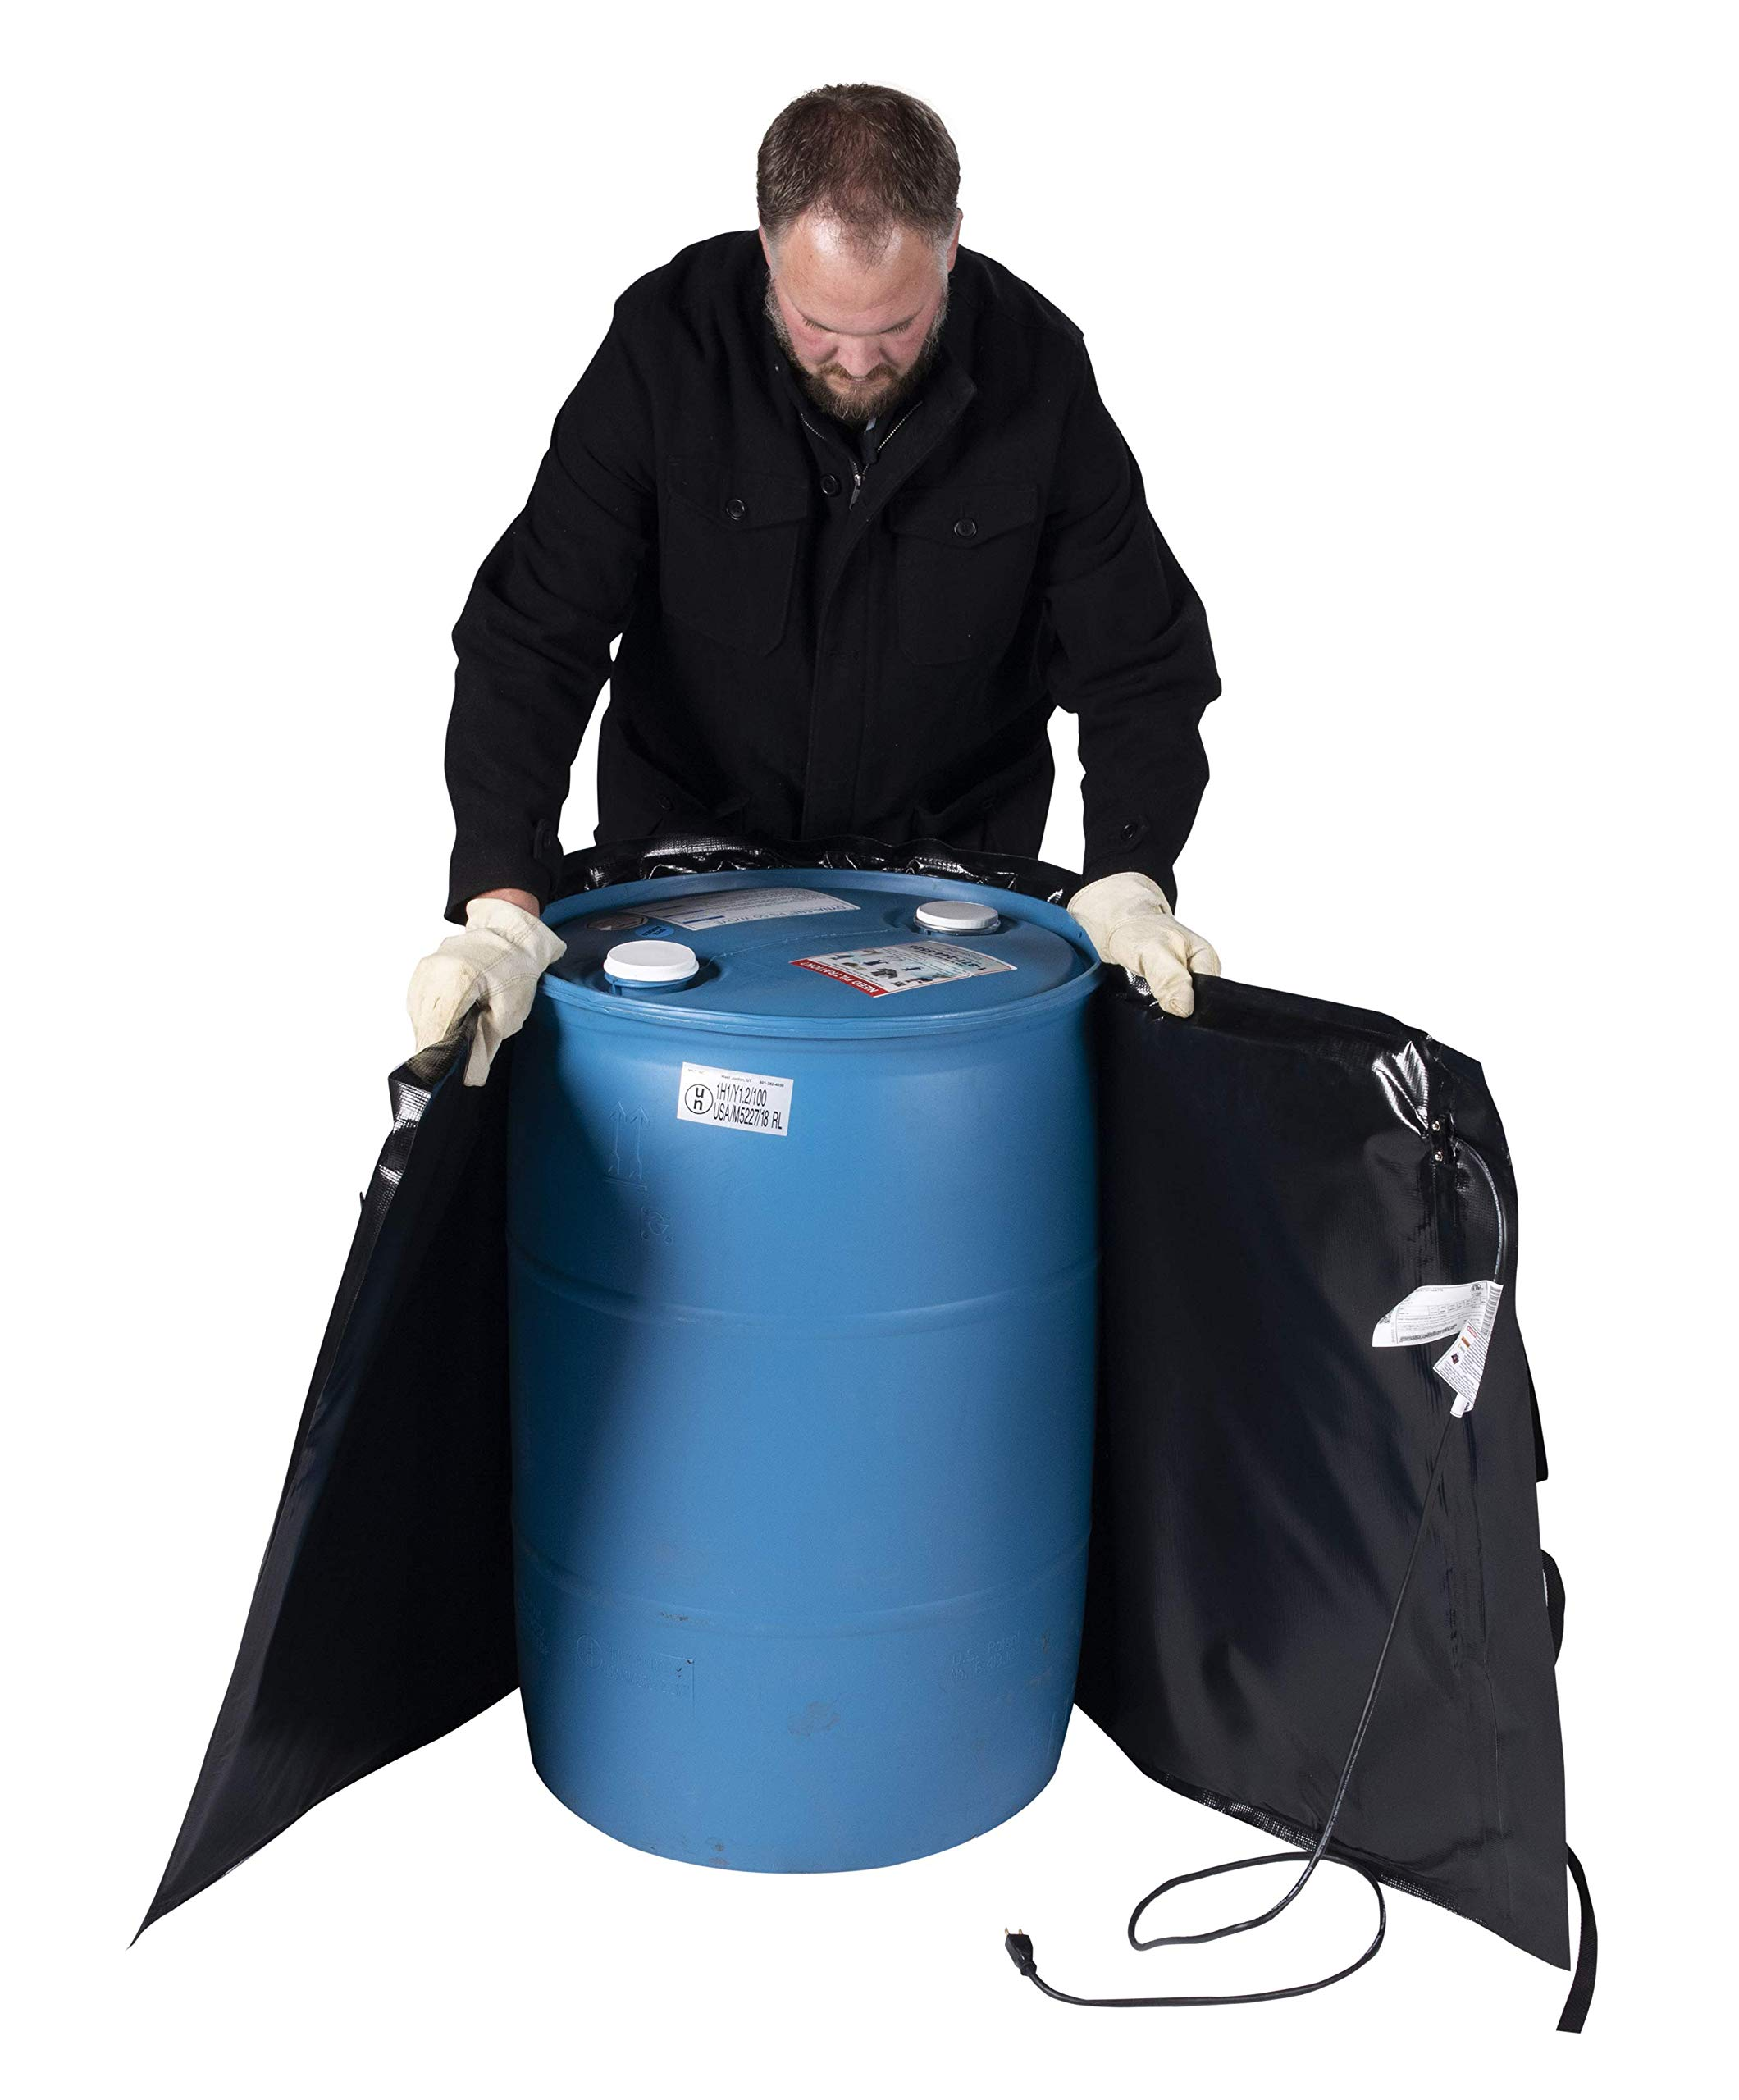 Powerblanket BH55RR-100 55-Gallon Insulated Drum